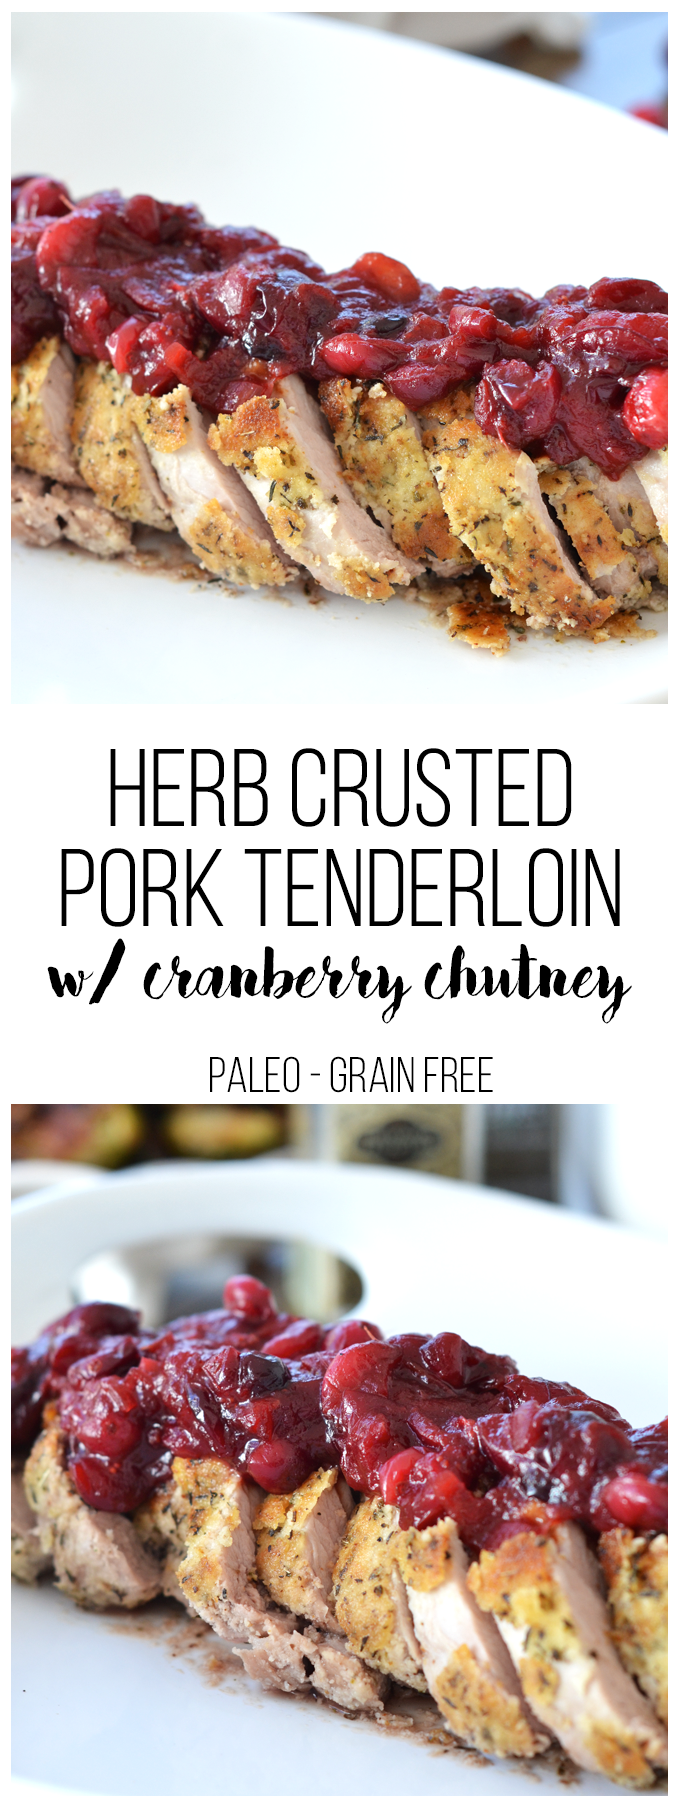 This Herb Crusted Pork Tenderloin w/ Cranberry Chutney is the perfect friendsgiving or thanksgiving dish!! The dish is paleo and delicious for everyone to enjoy!